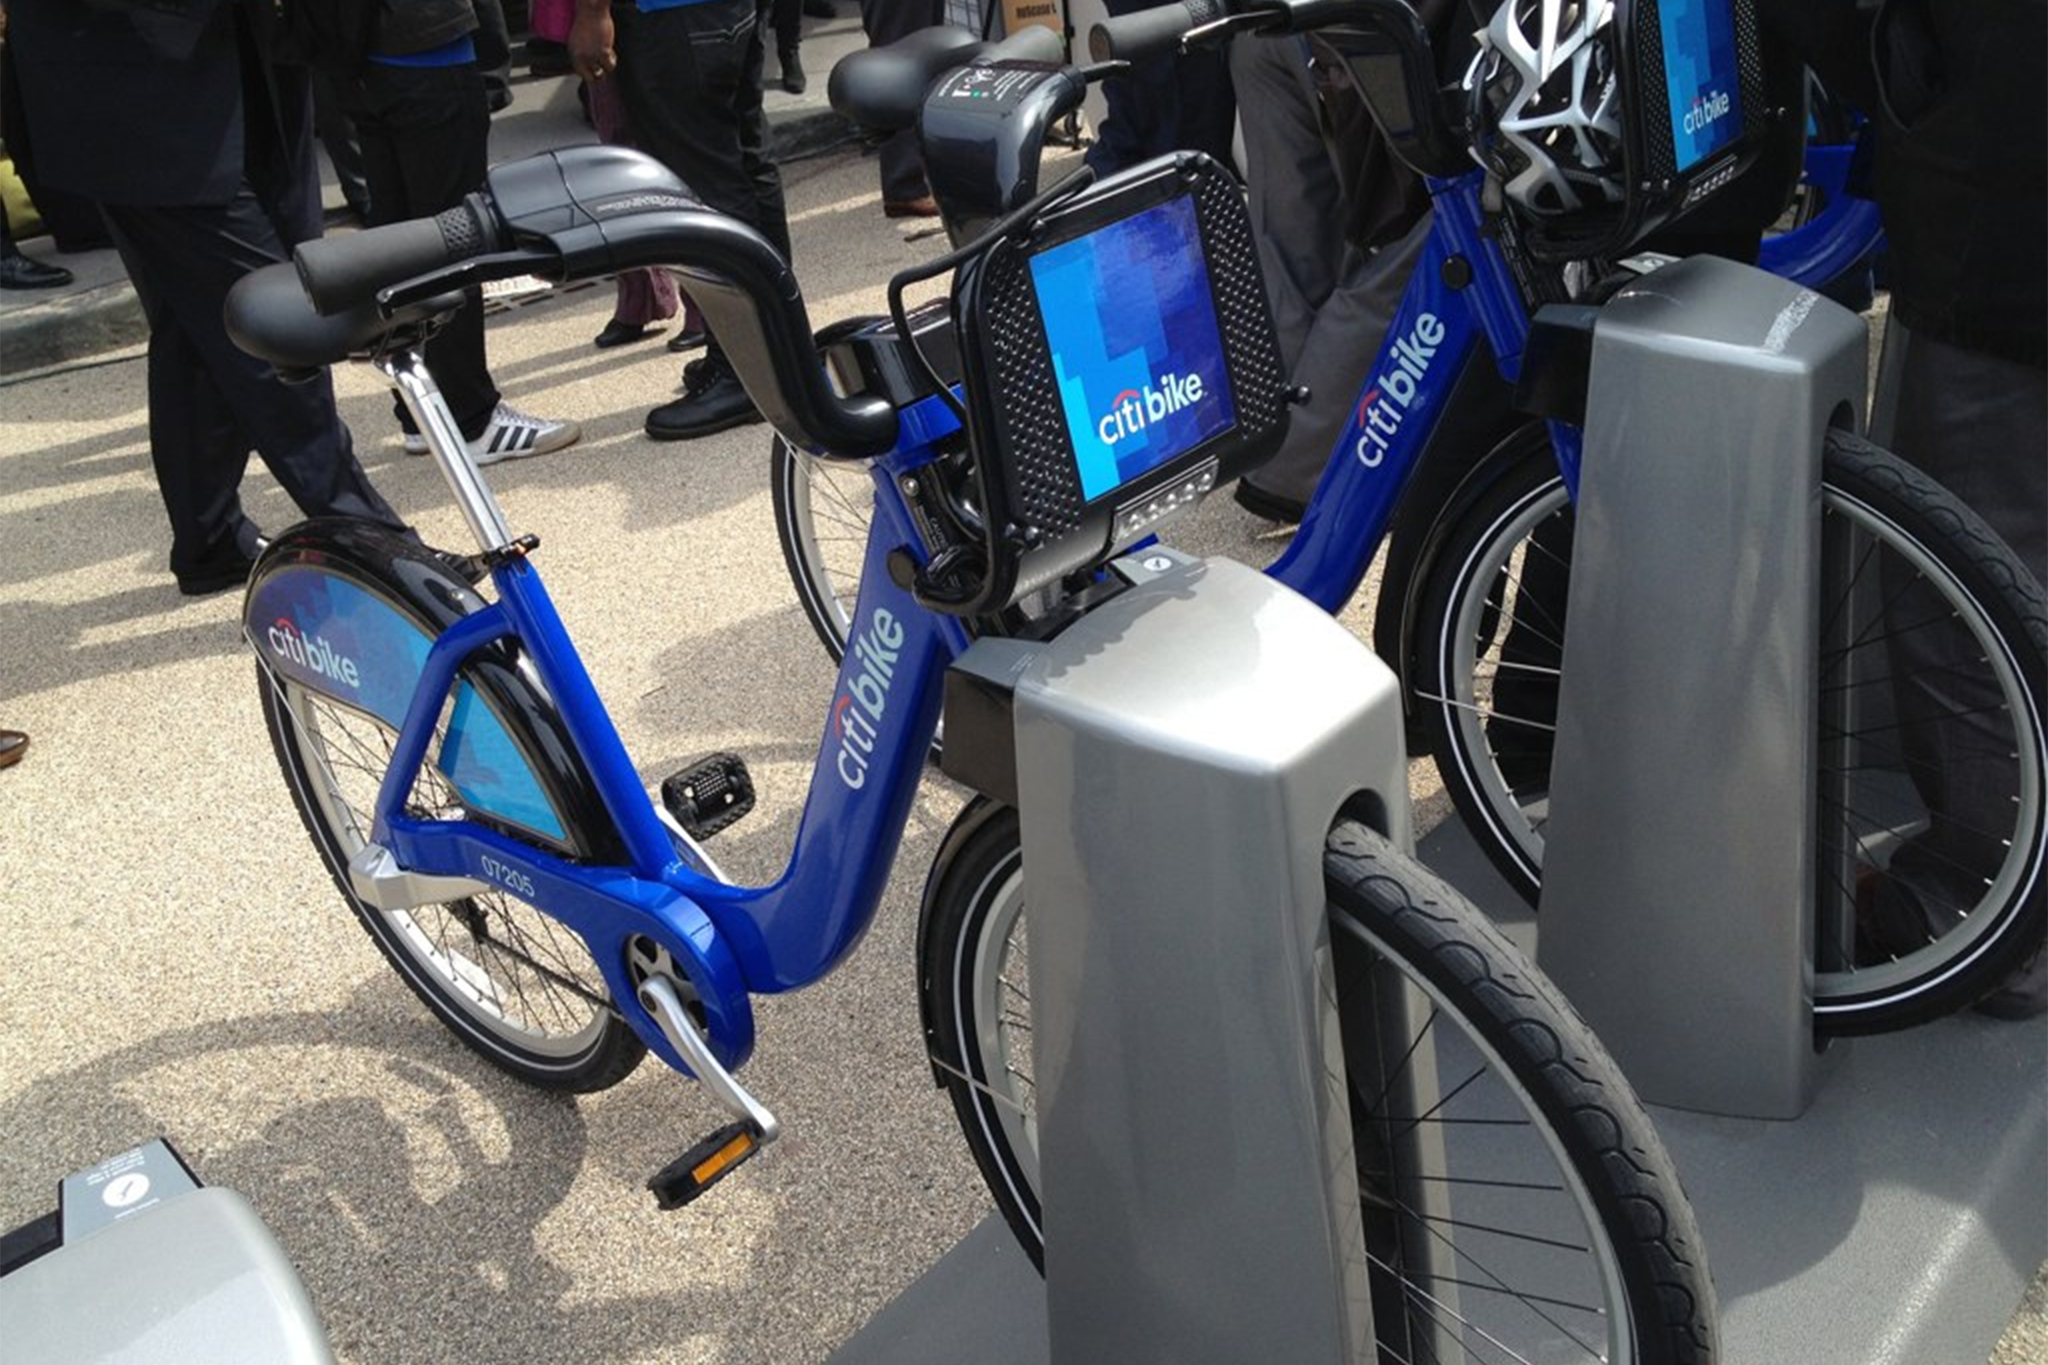 Cruise around the city on a Citibike